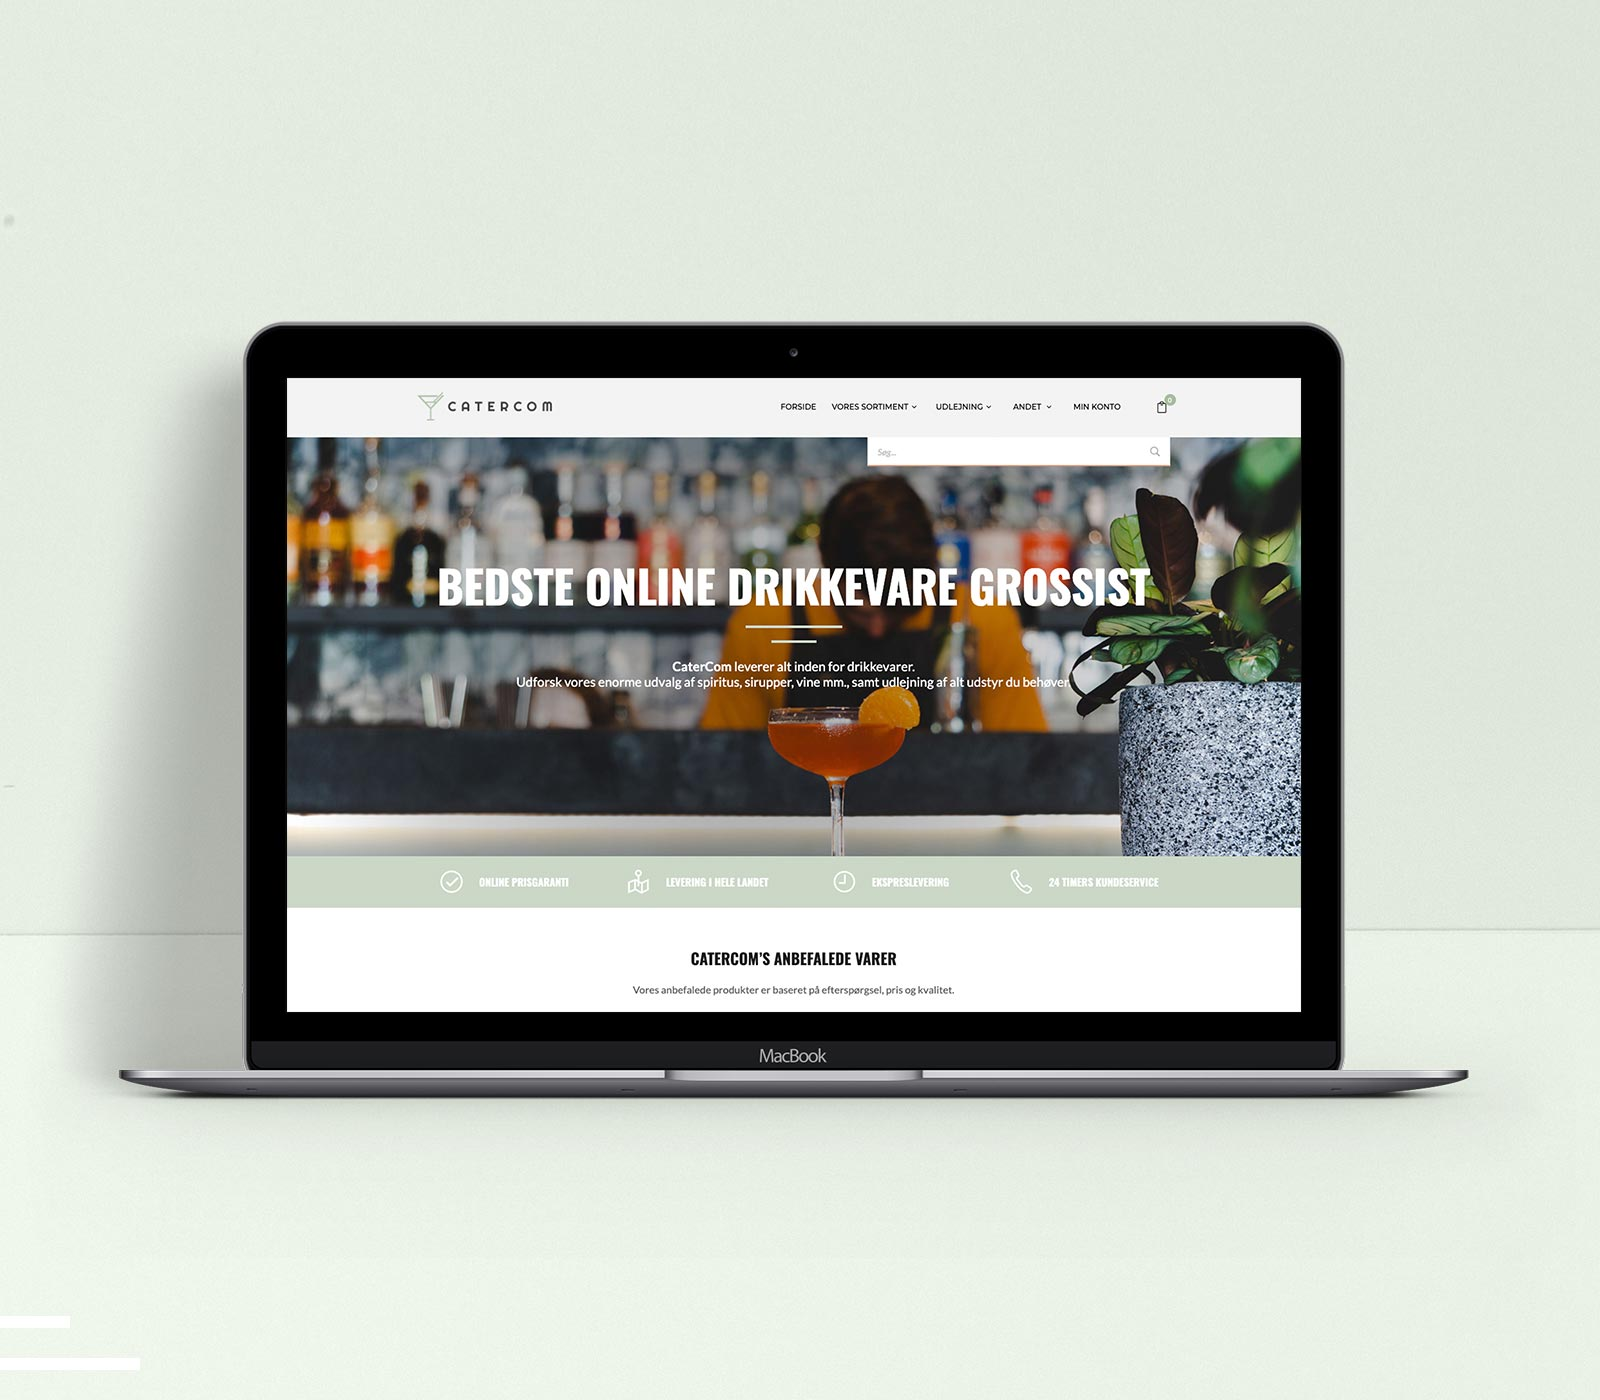 CaterCom - An online beverage wholesaler by Nordic Liquid Group